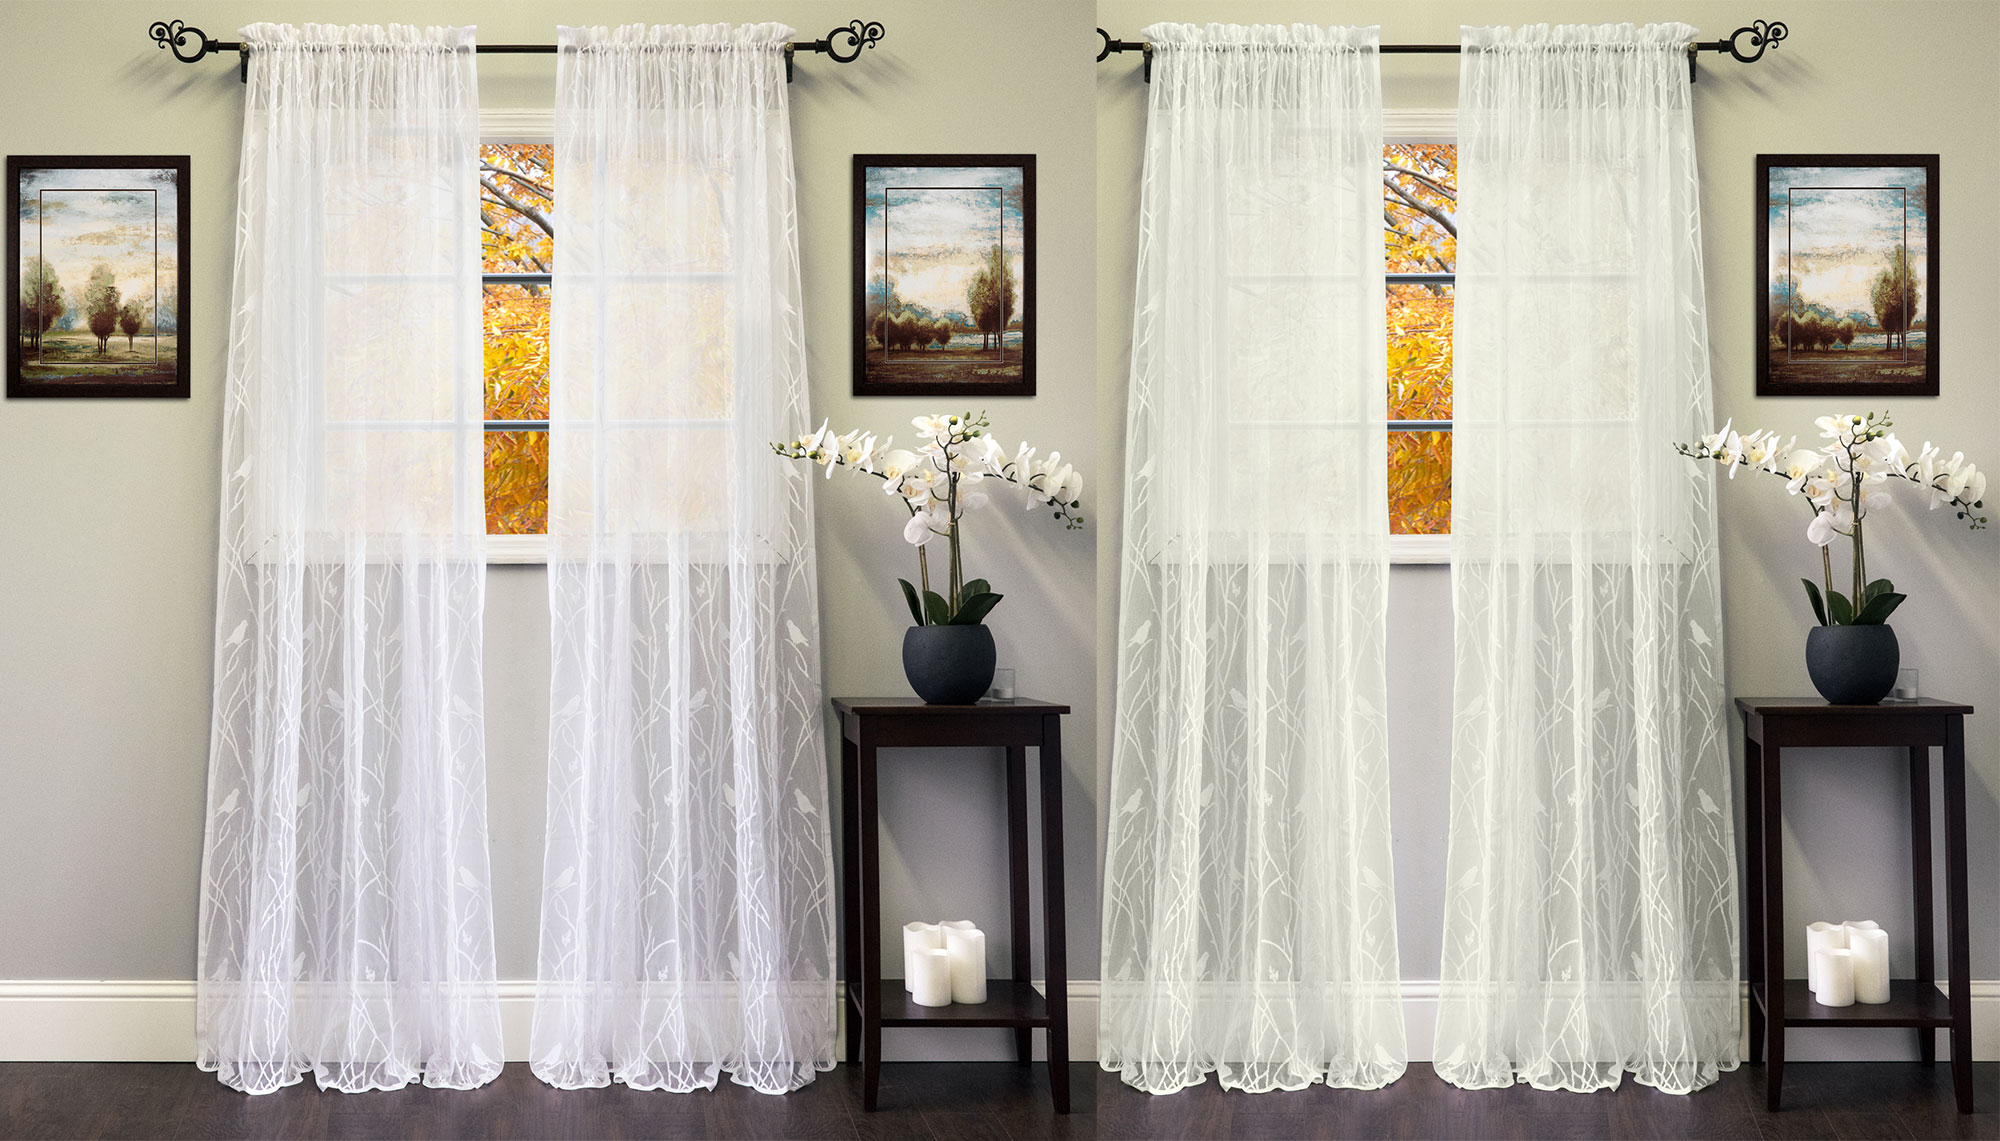 "Marine Life Motif Knitted Lace Window Curtain Pieces Pertaining To Most Popular Details About Knit Lace Polyester Songbird Motif 56""x 84"" Window Curtain Panel (Gallery 20 of 20)"